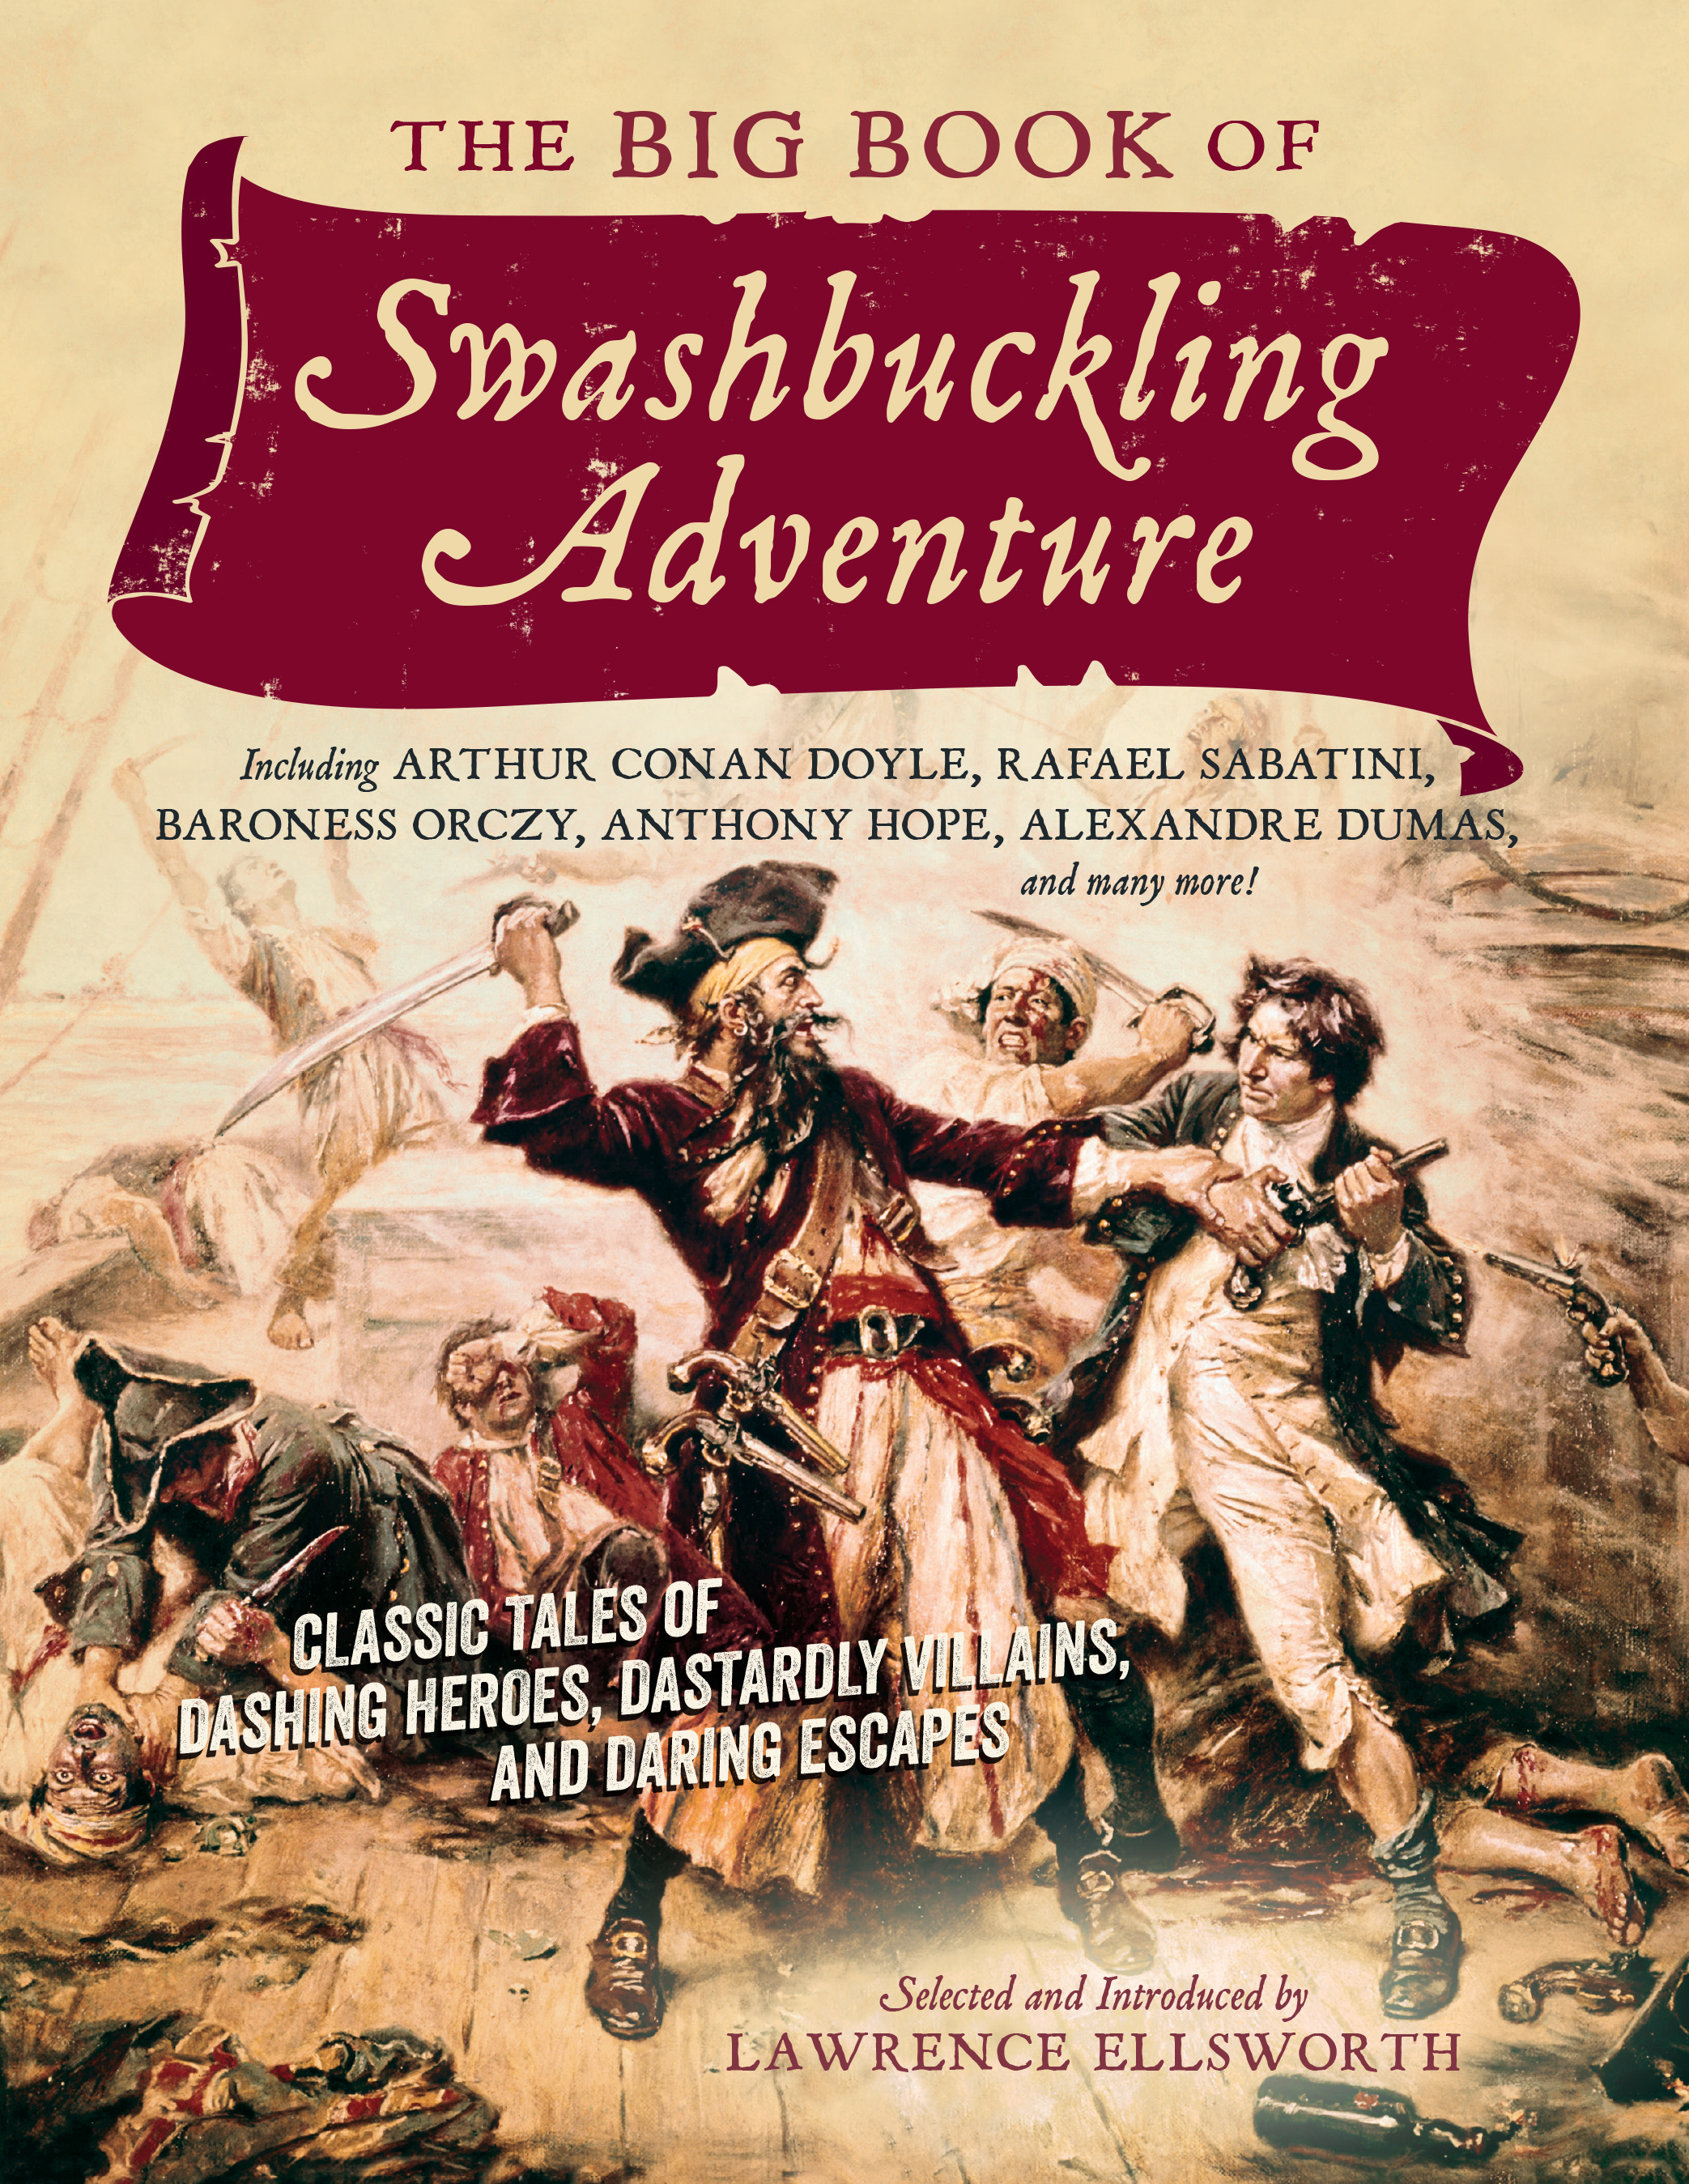 The-Big-Book-of-Swashbuckling-Adventure_CVR.jpg